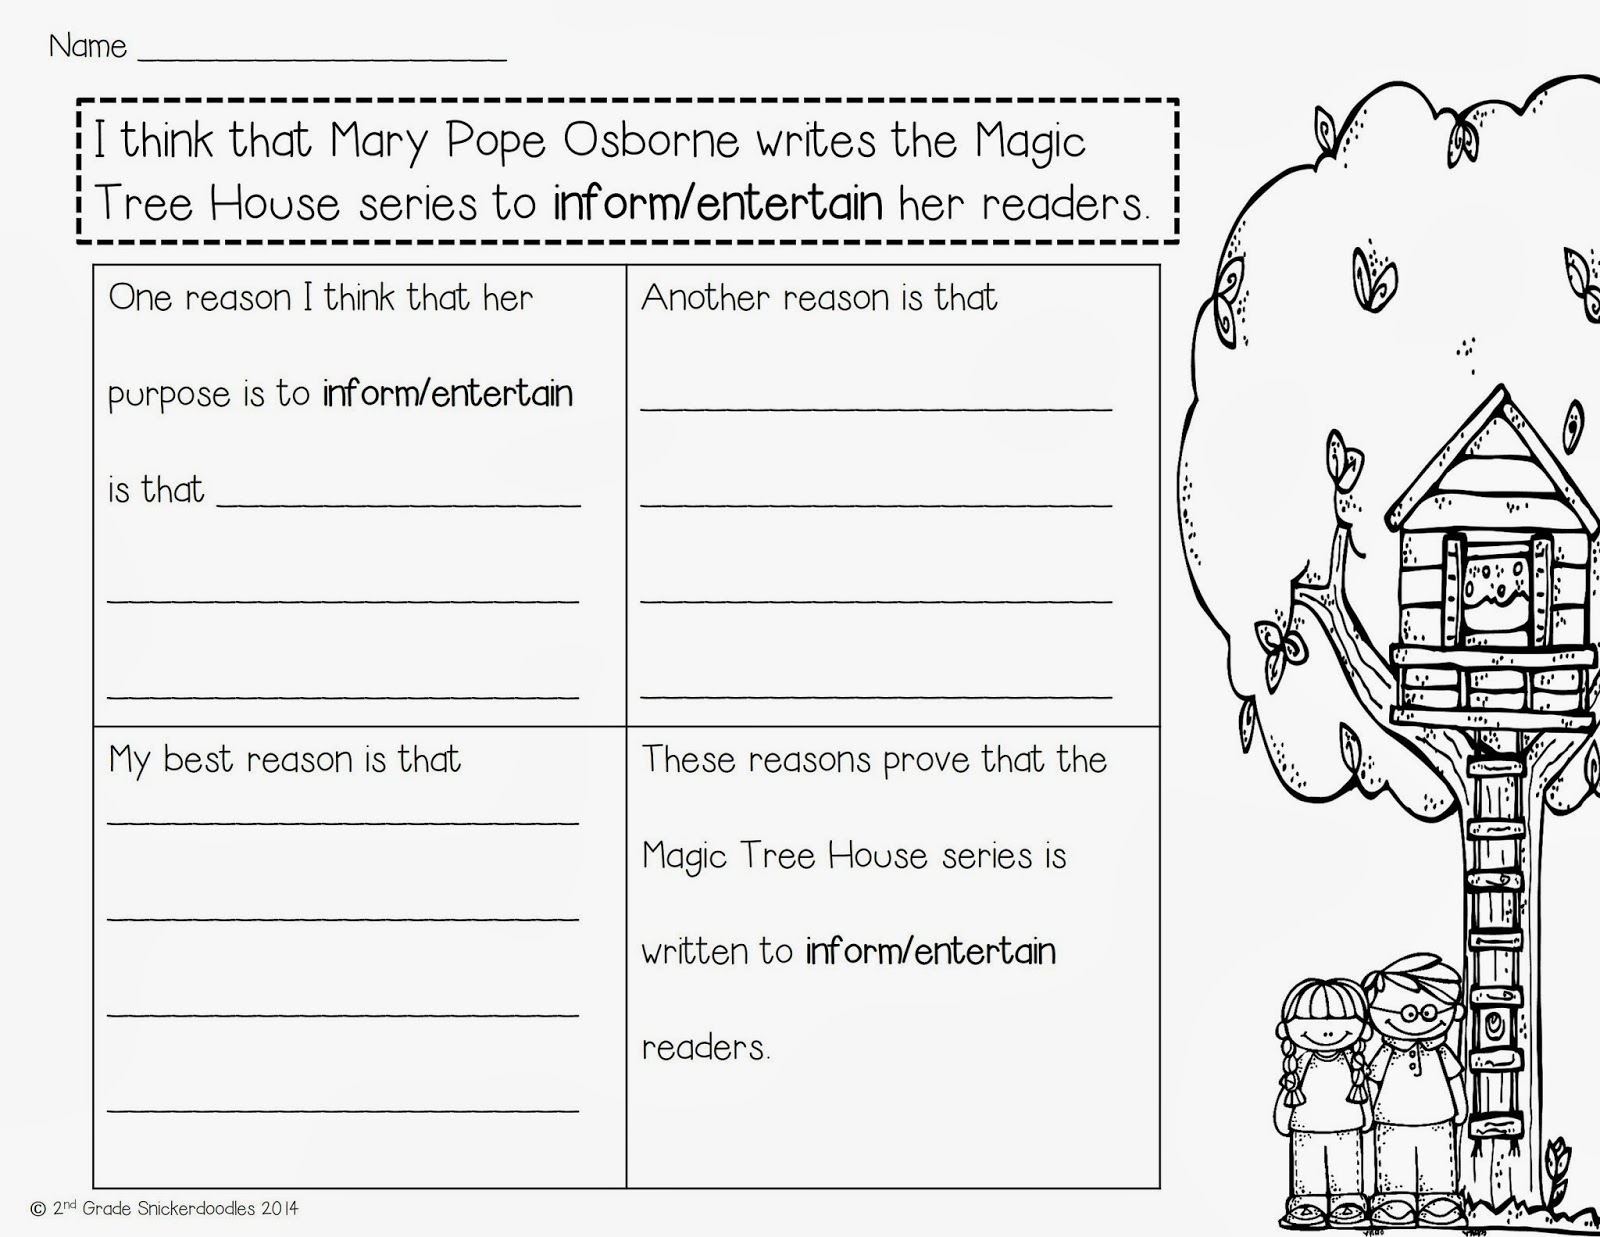 worksheet Authors Purpose Worksheet 2nd grade snickerdoodles authors purpose with a freebie good luck ridding your room of peppermint patty style thinking i would love to hear ideas for teaching this concept